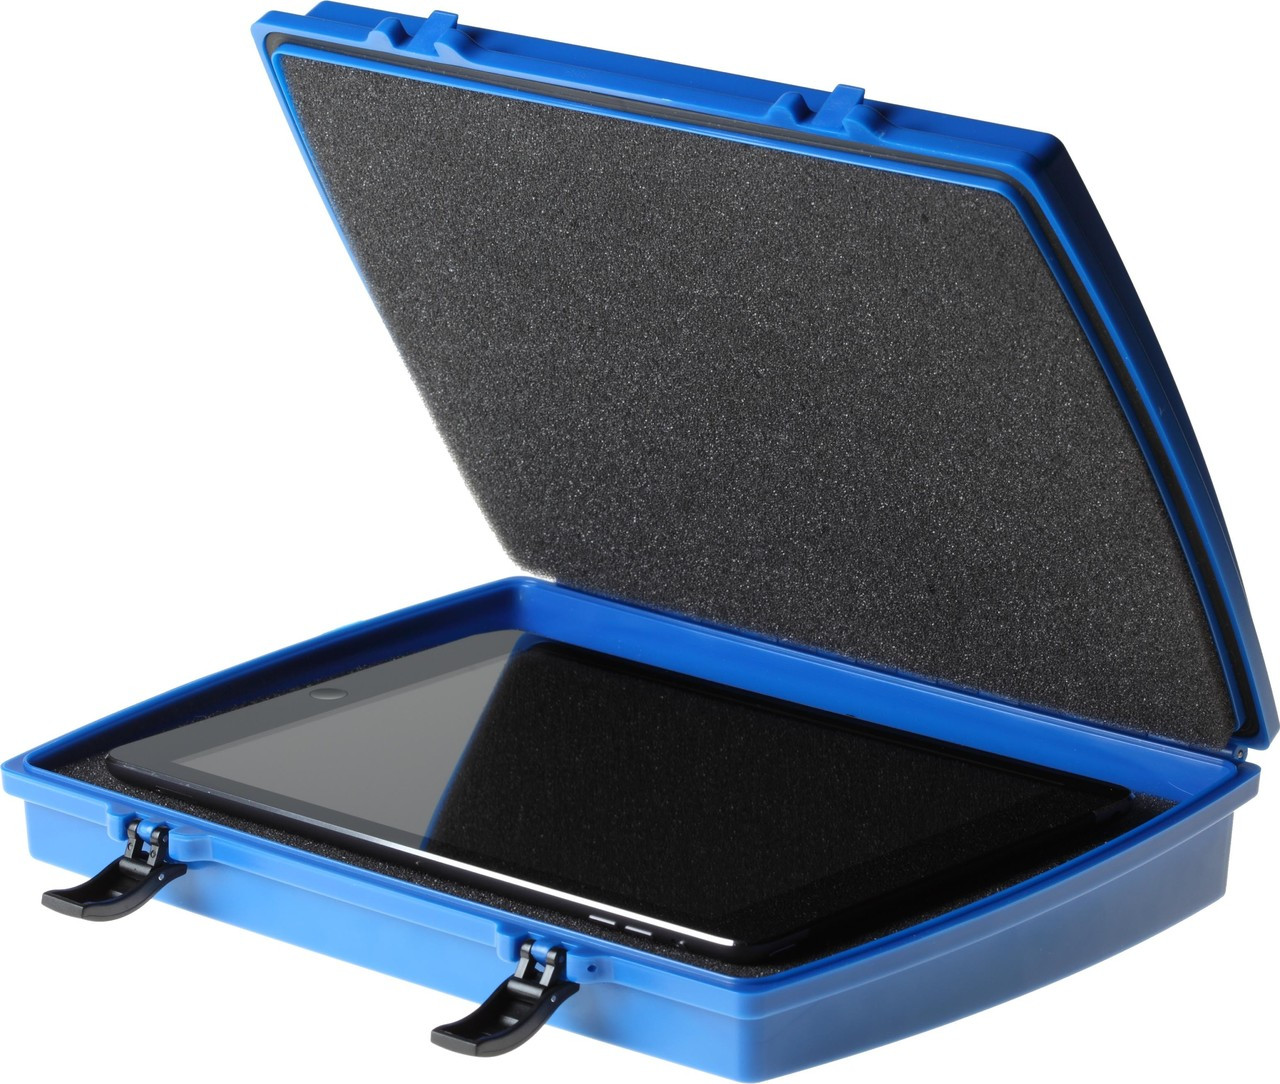 Witz Dry Box Tablet Traveler Storage Case Cover (Fits iPad)